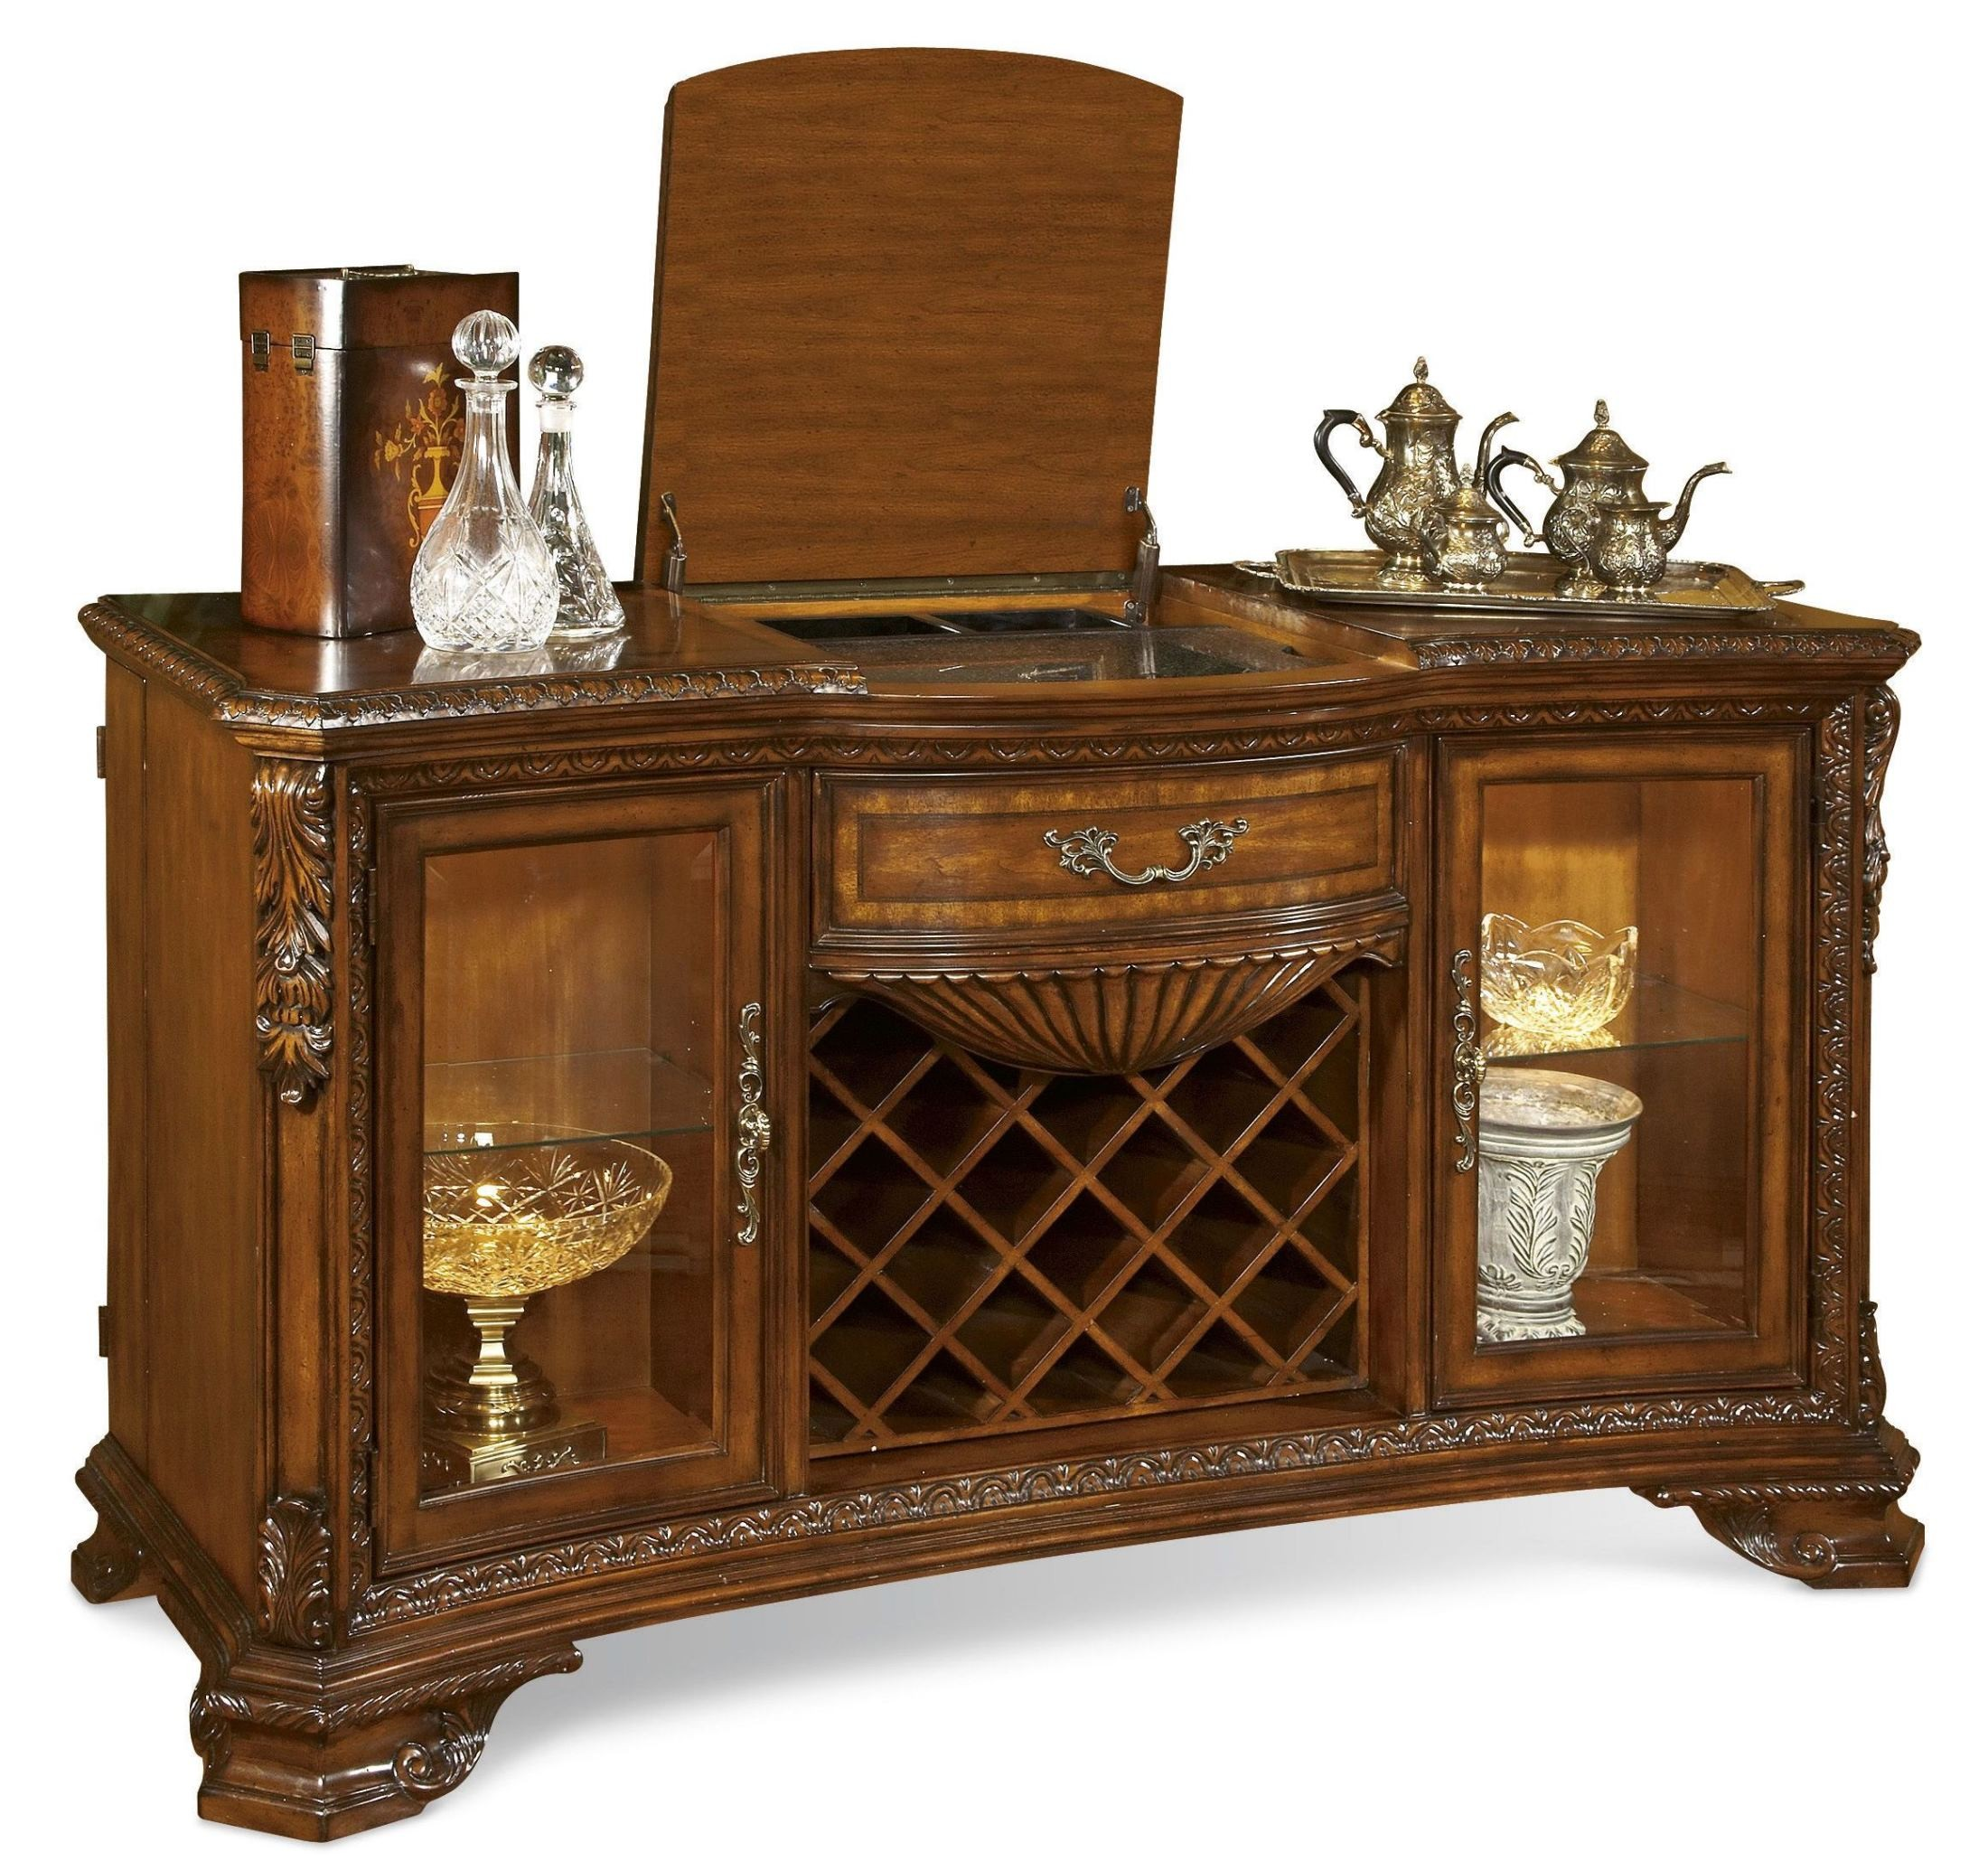 Old World Furnishings: Old World Extendable Dining Room Set From ART (143220-2606